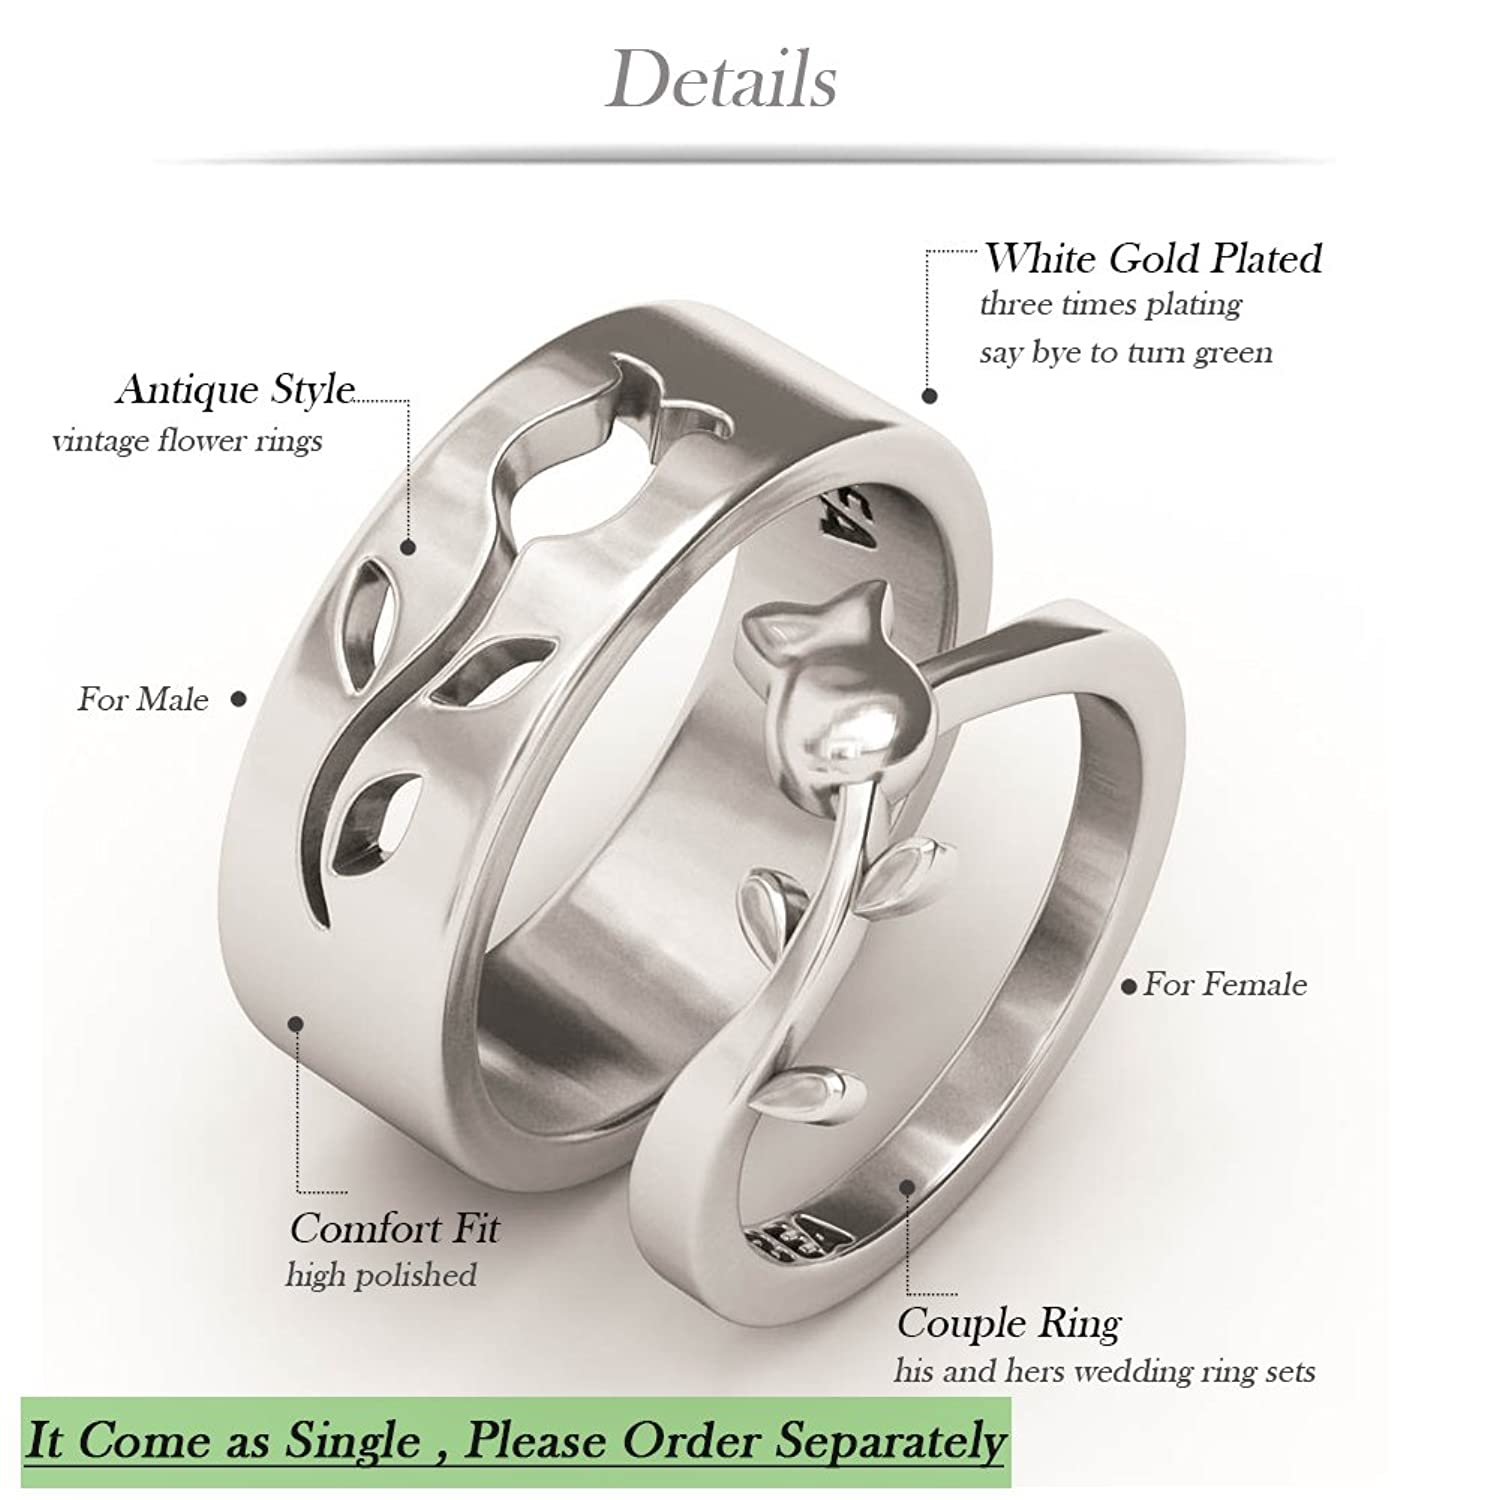 Amazoncom Wedding Bands EVBEA Vintage Flower Promise Rings for